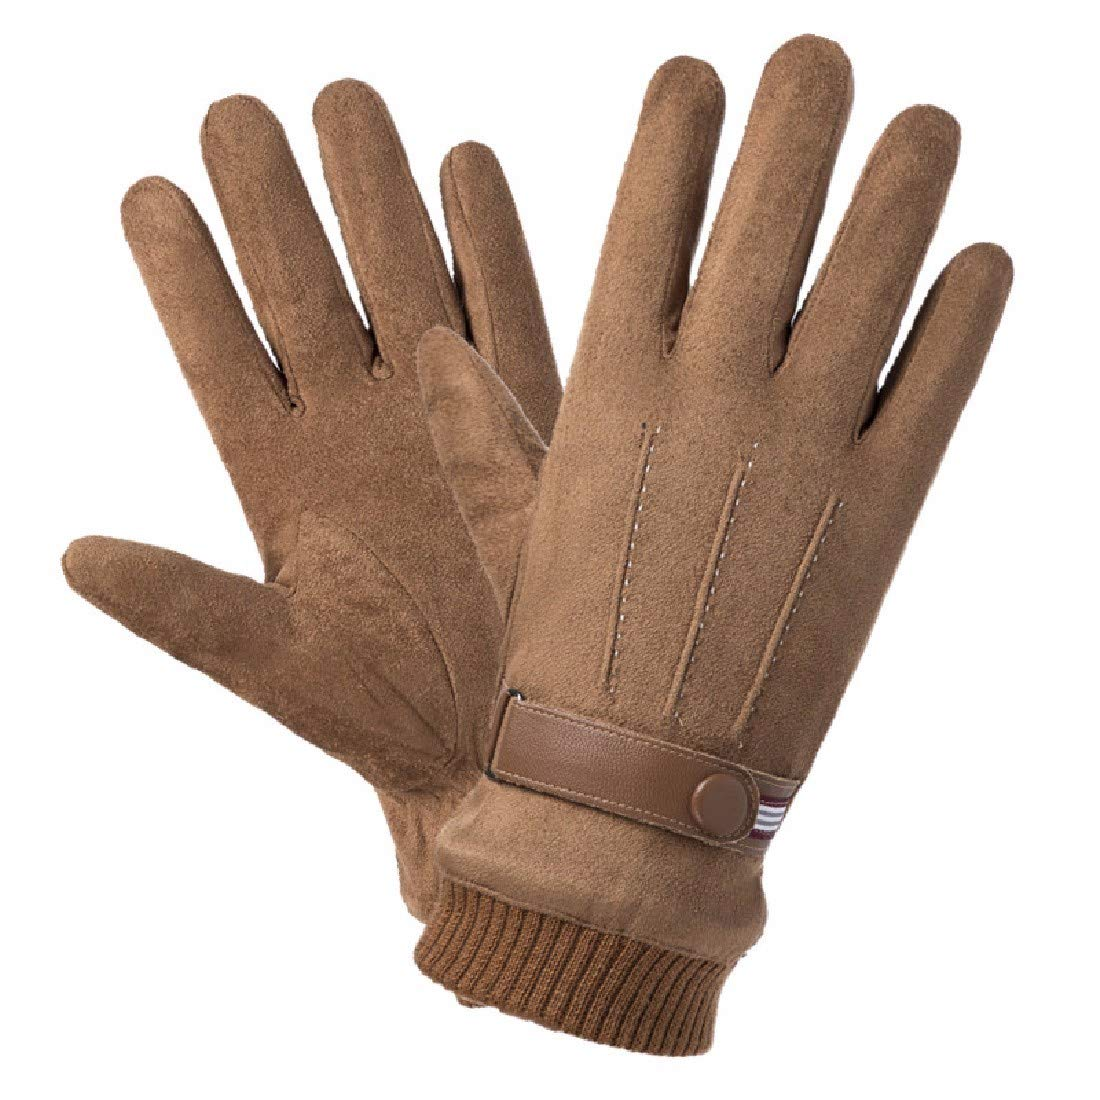 ZPSPZ mens gloves Gloves Mens Windbreak Warm Furry Touch Screen Riding Cotton Gloves in Autumn and Winter